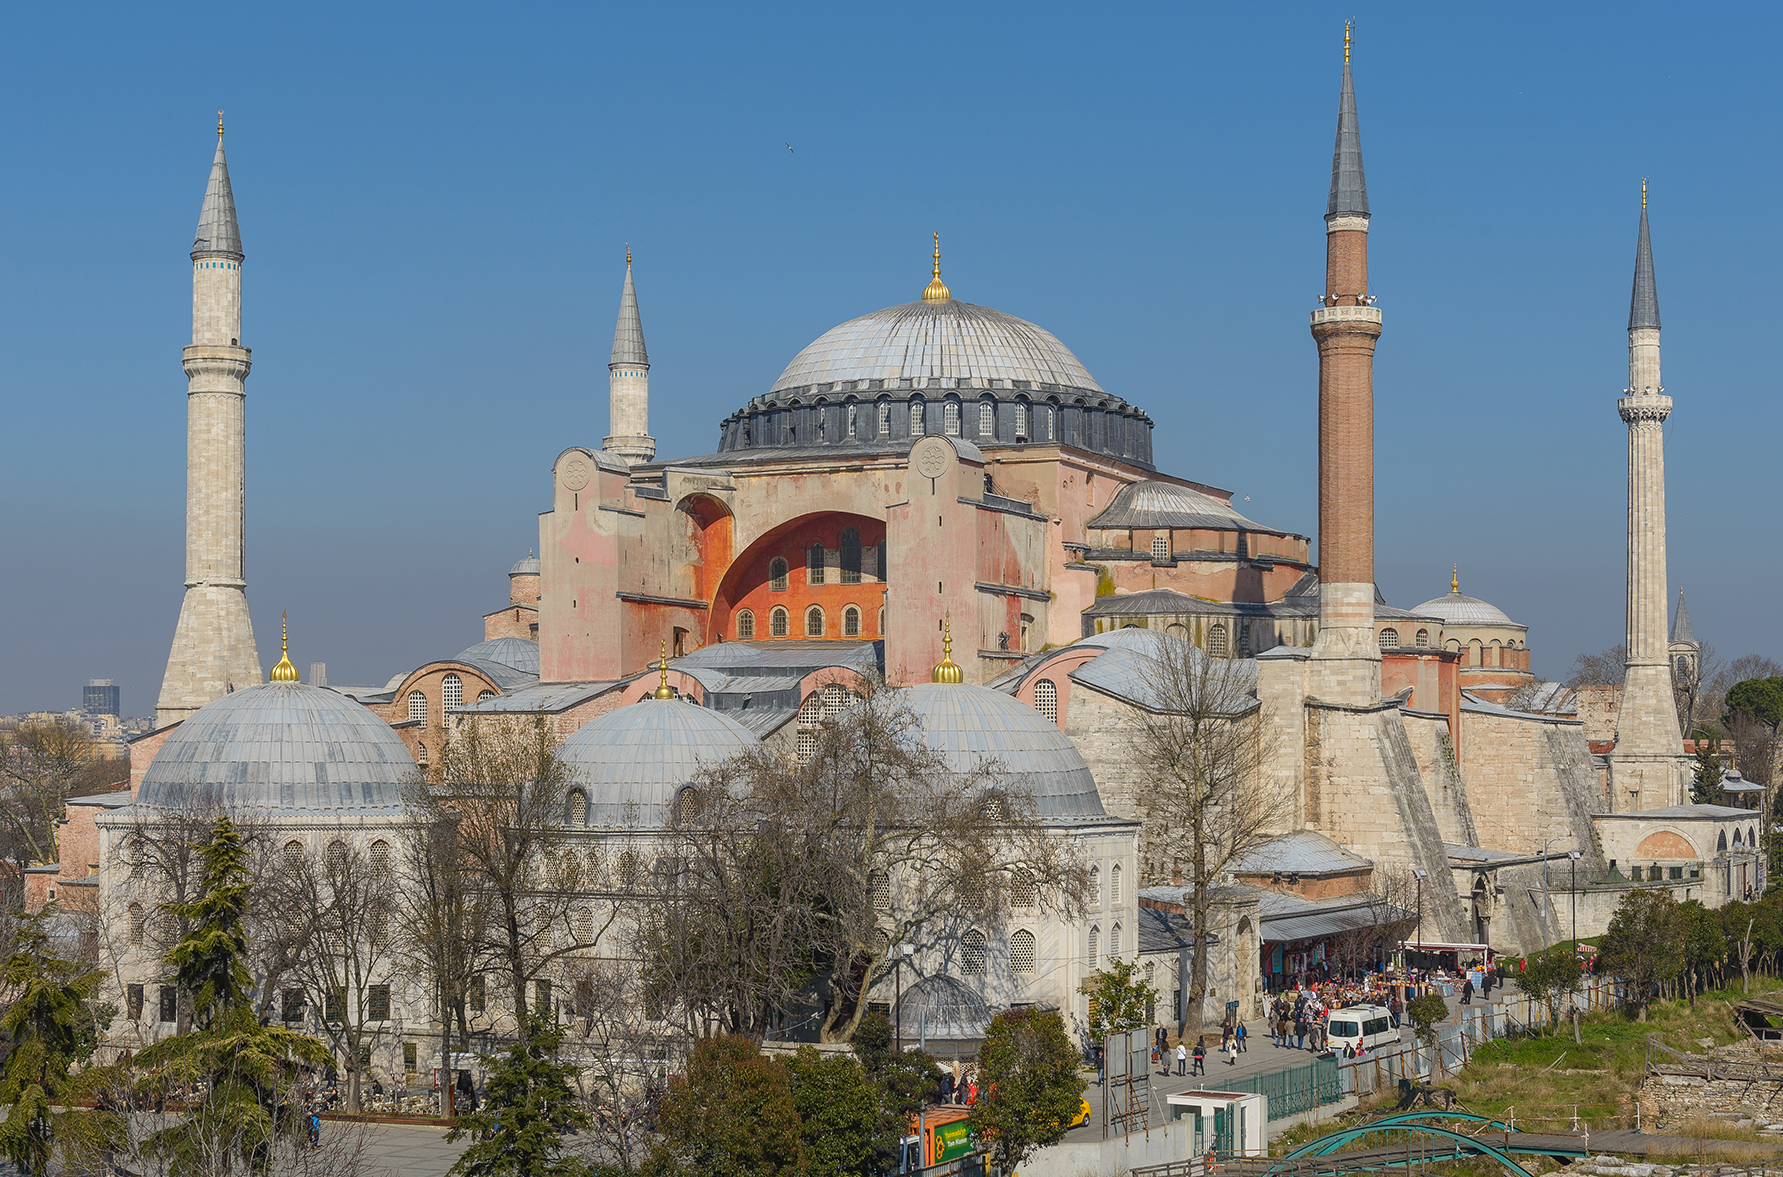 The Hagia Sophia church (now a museum) in Istanbul, Turkey